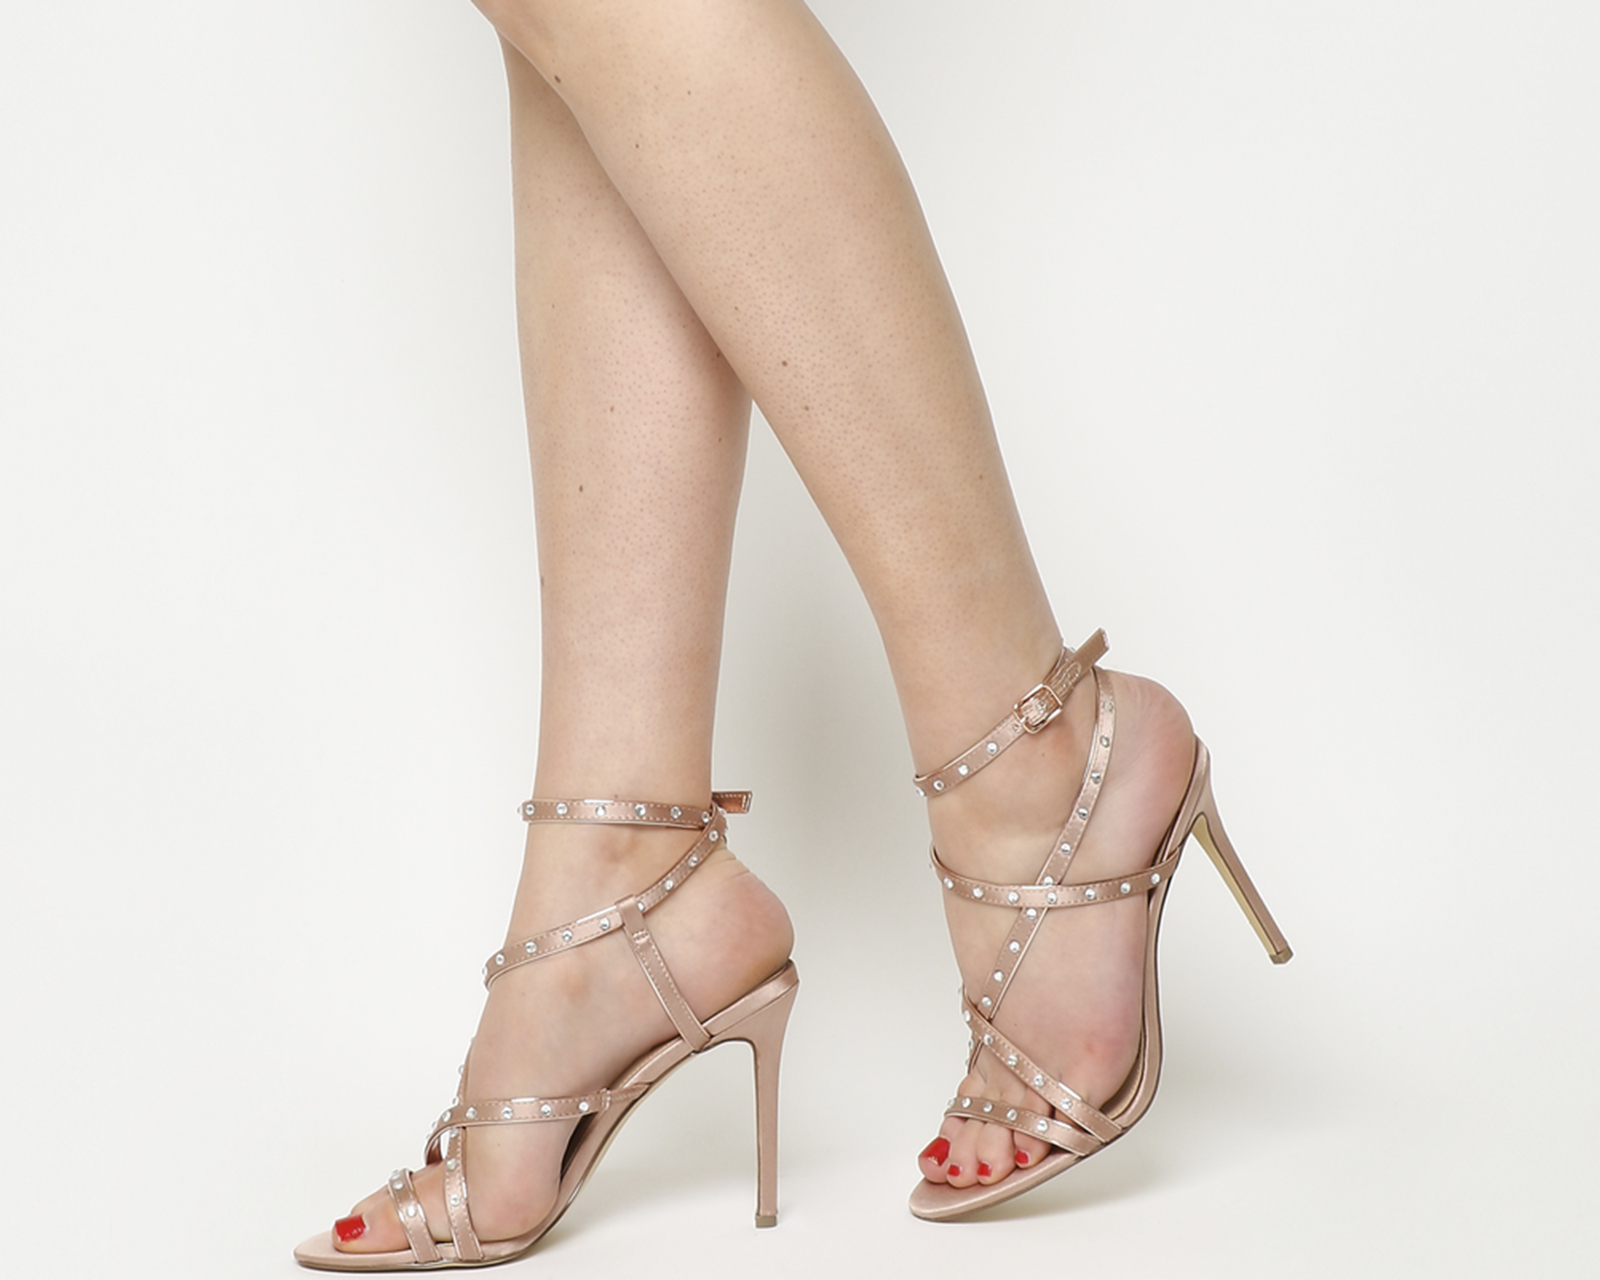 c103ae8911 Sentinel Womens Office Hugo Strappy Sandals Nude With Gems Heels